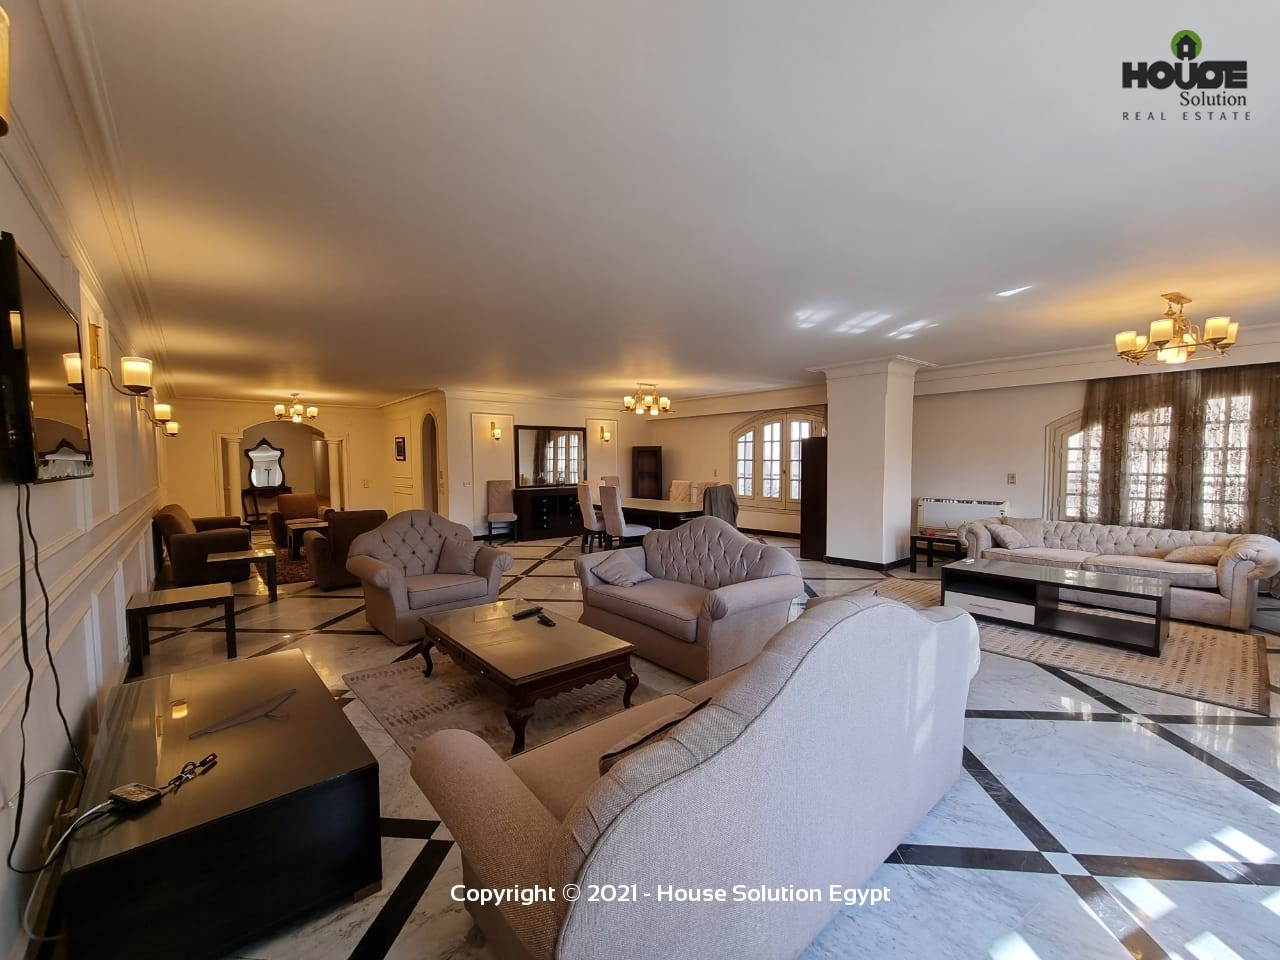 Bright Modern Furnished Apartment For Rent In Sarayat El Maadi Cairo Egypt - 5019 Featured Image